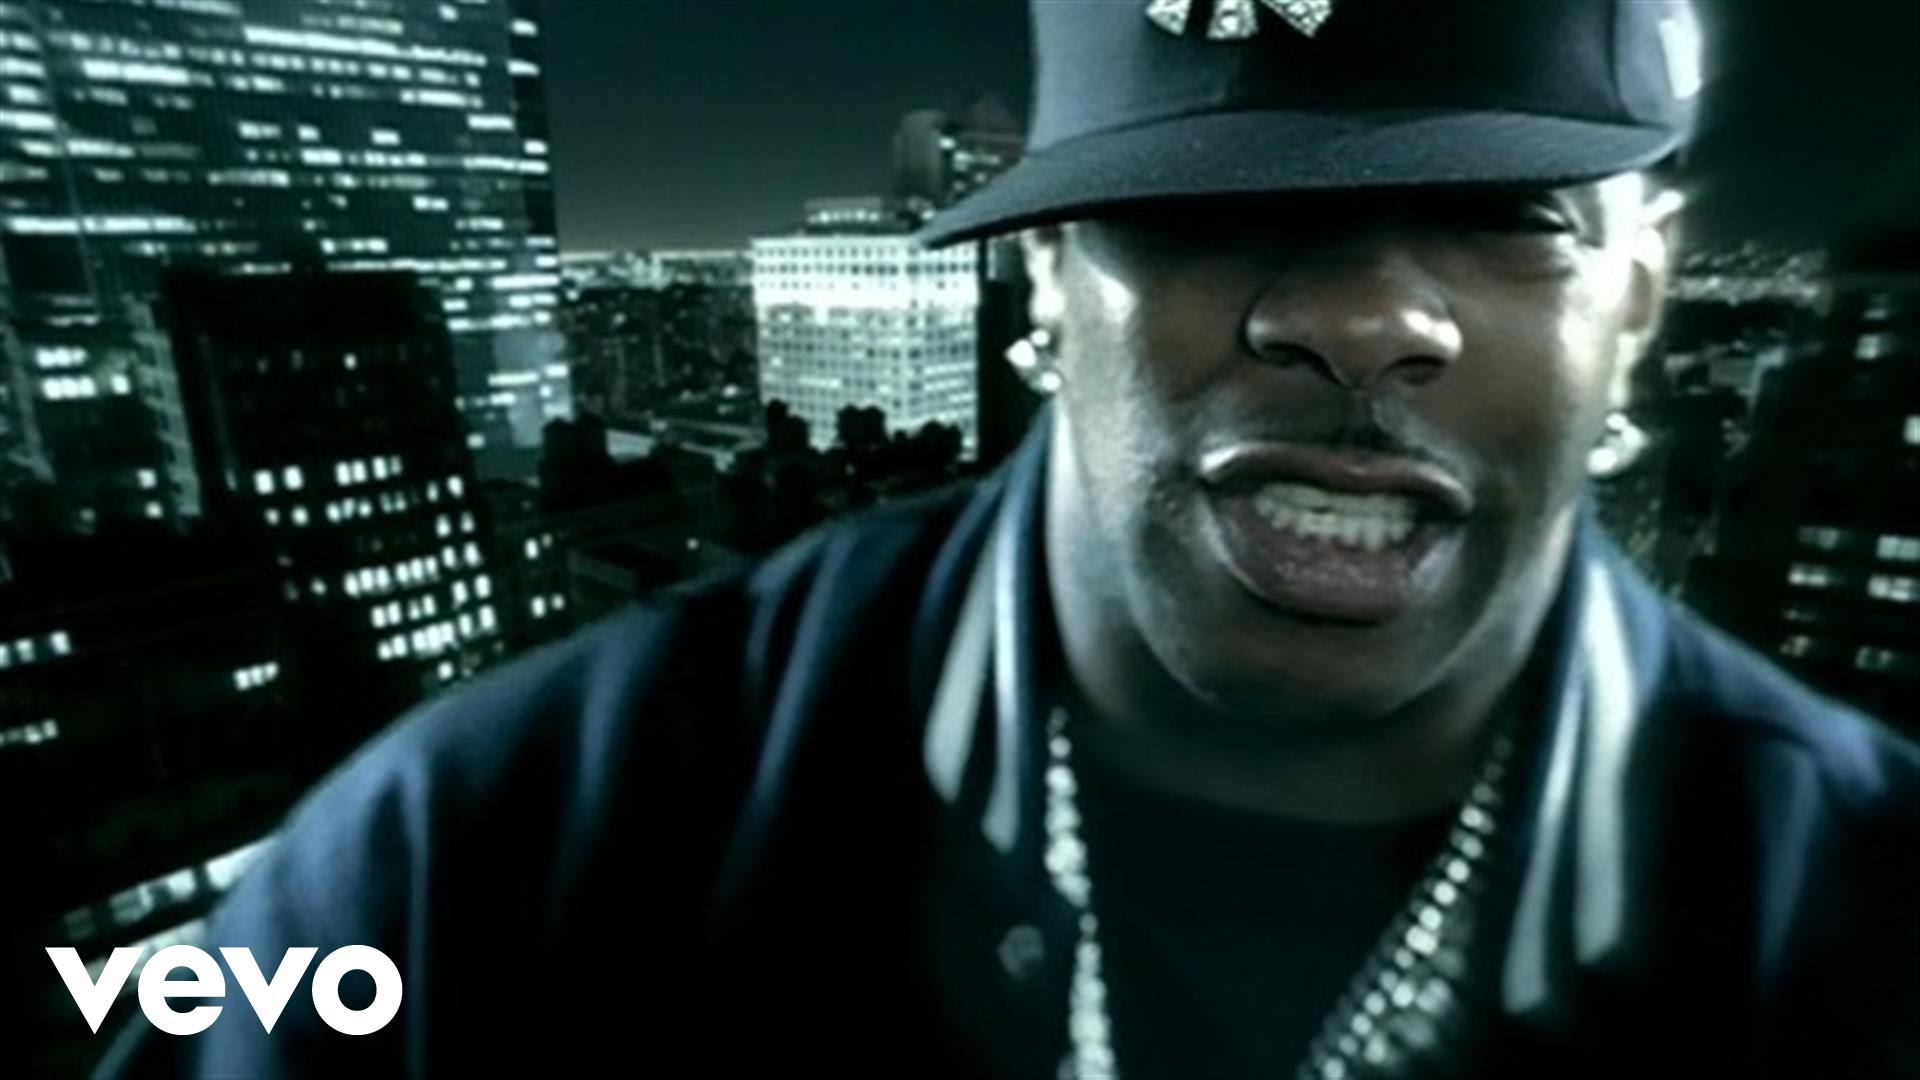 Busta Rhymes Ft Swizz Beatz – New York S***